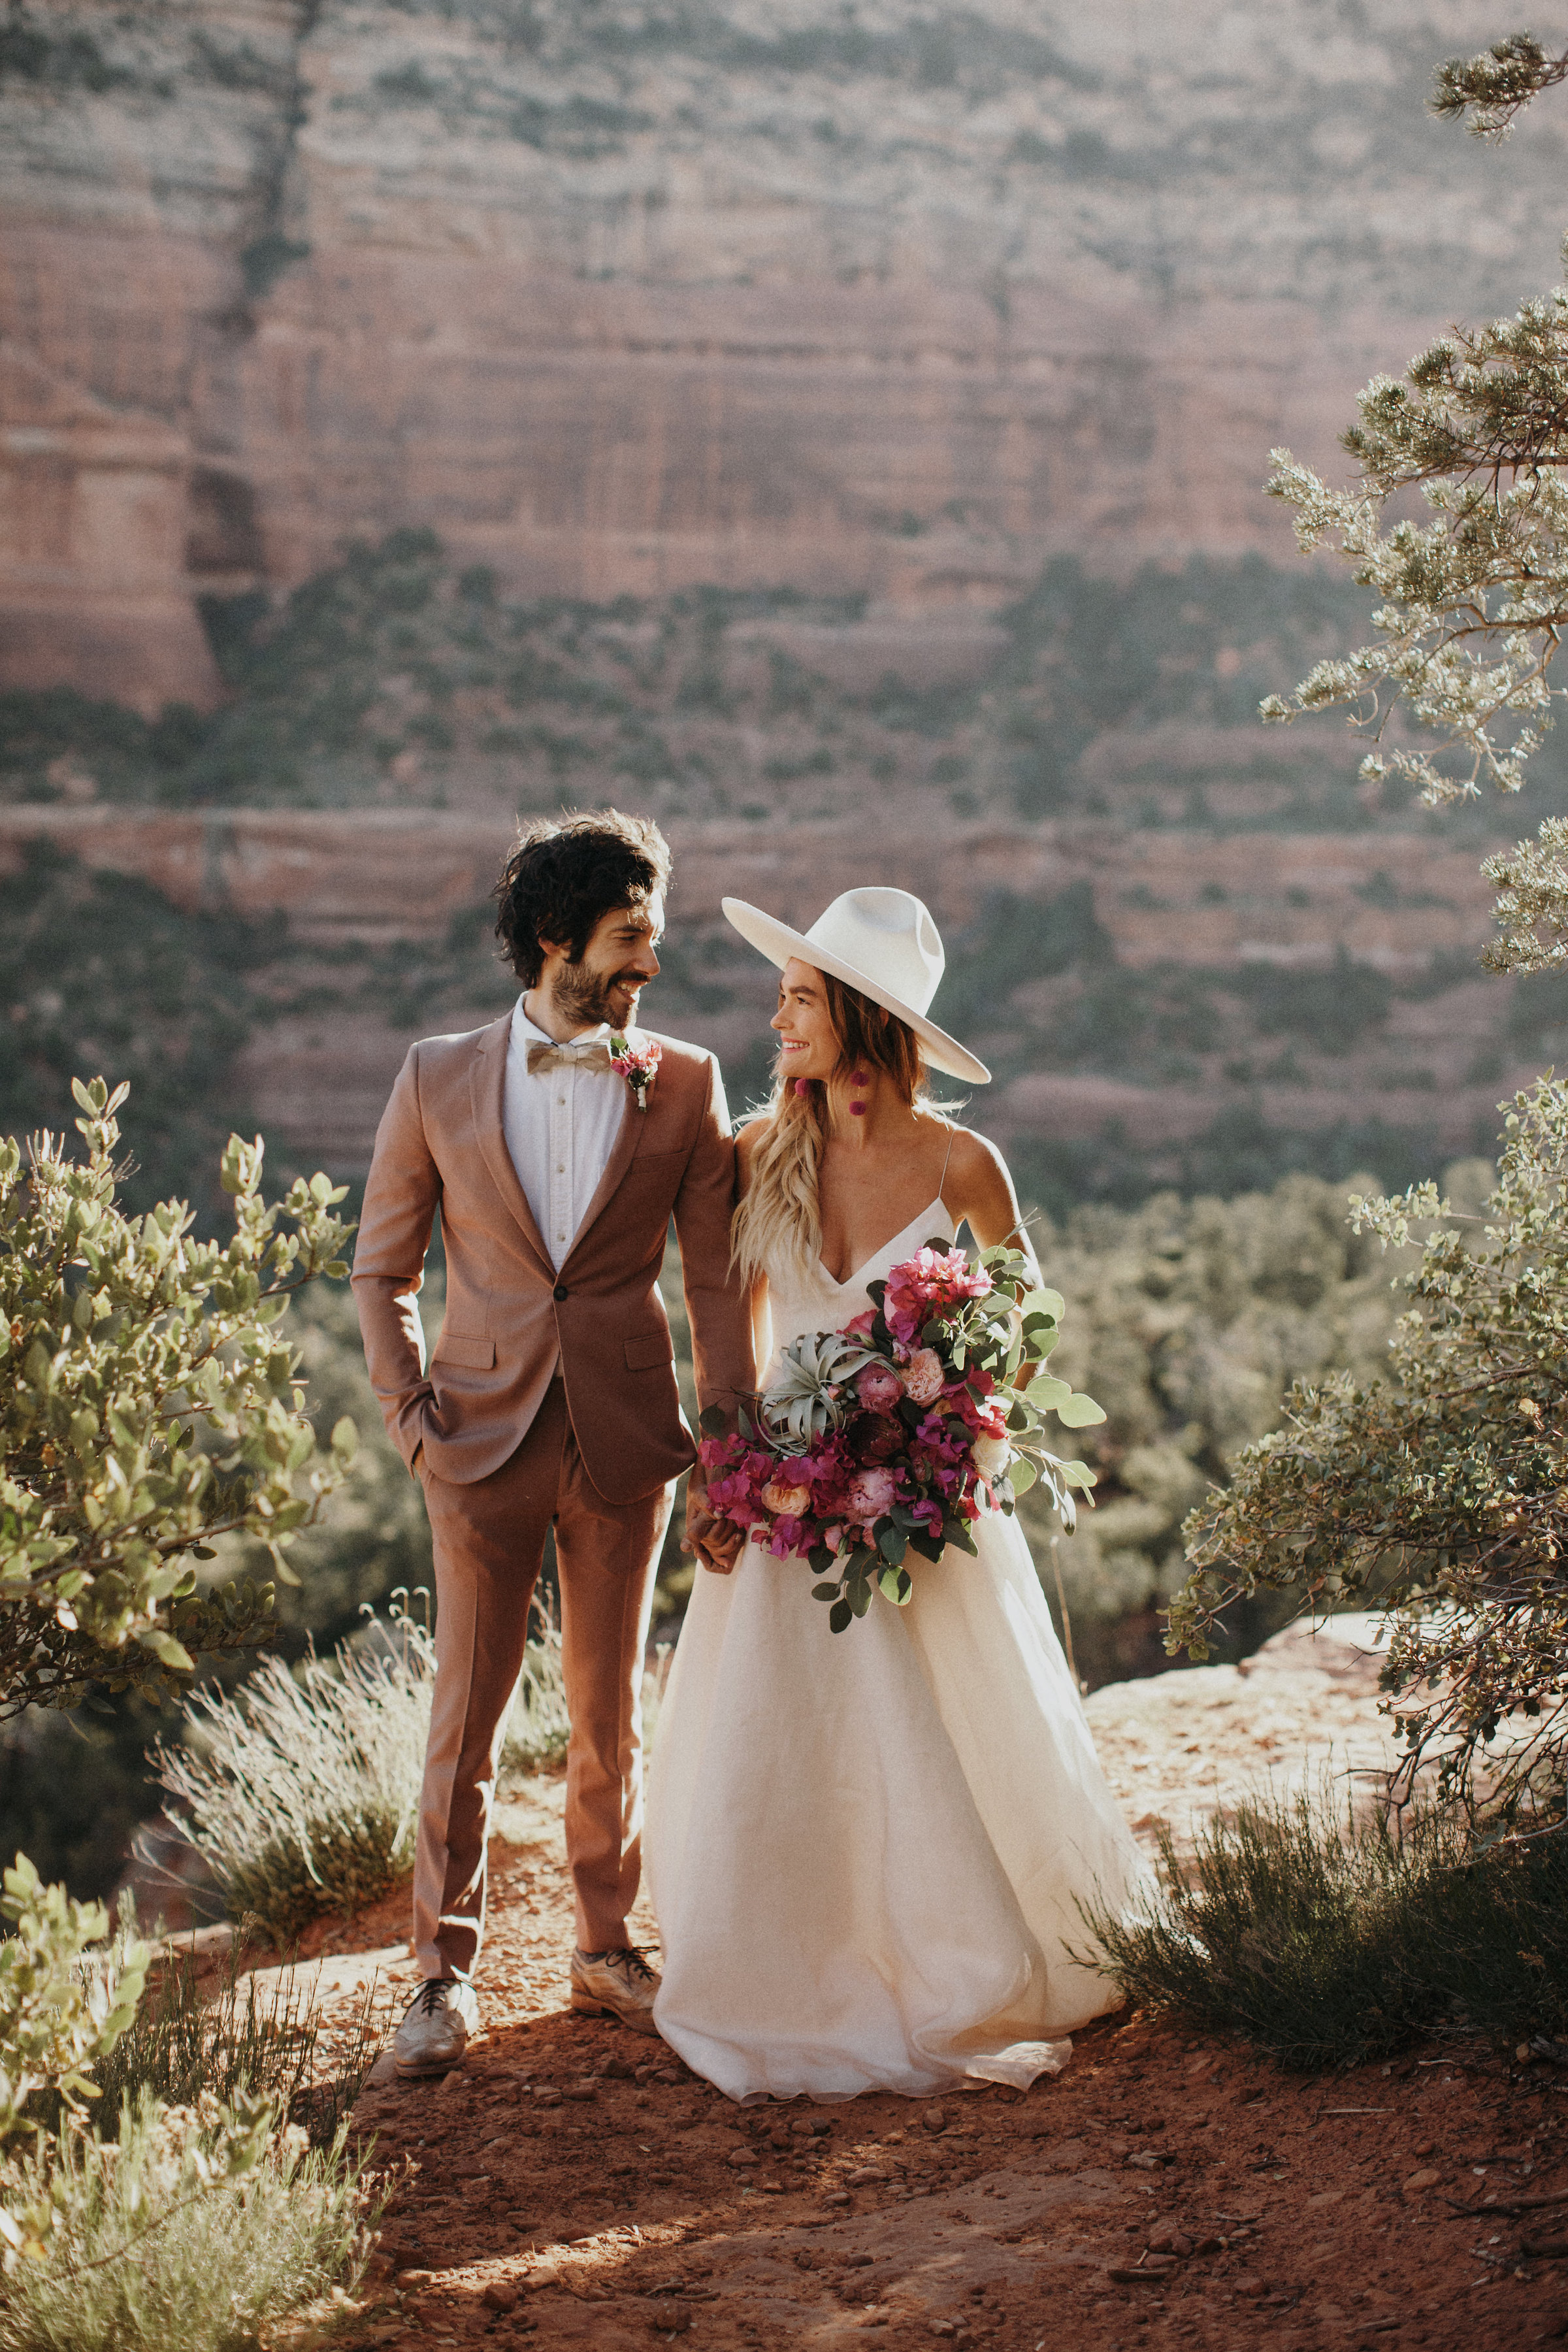 bride wearing white hat and gown in desert